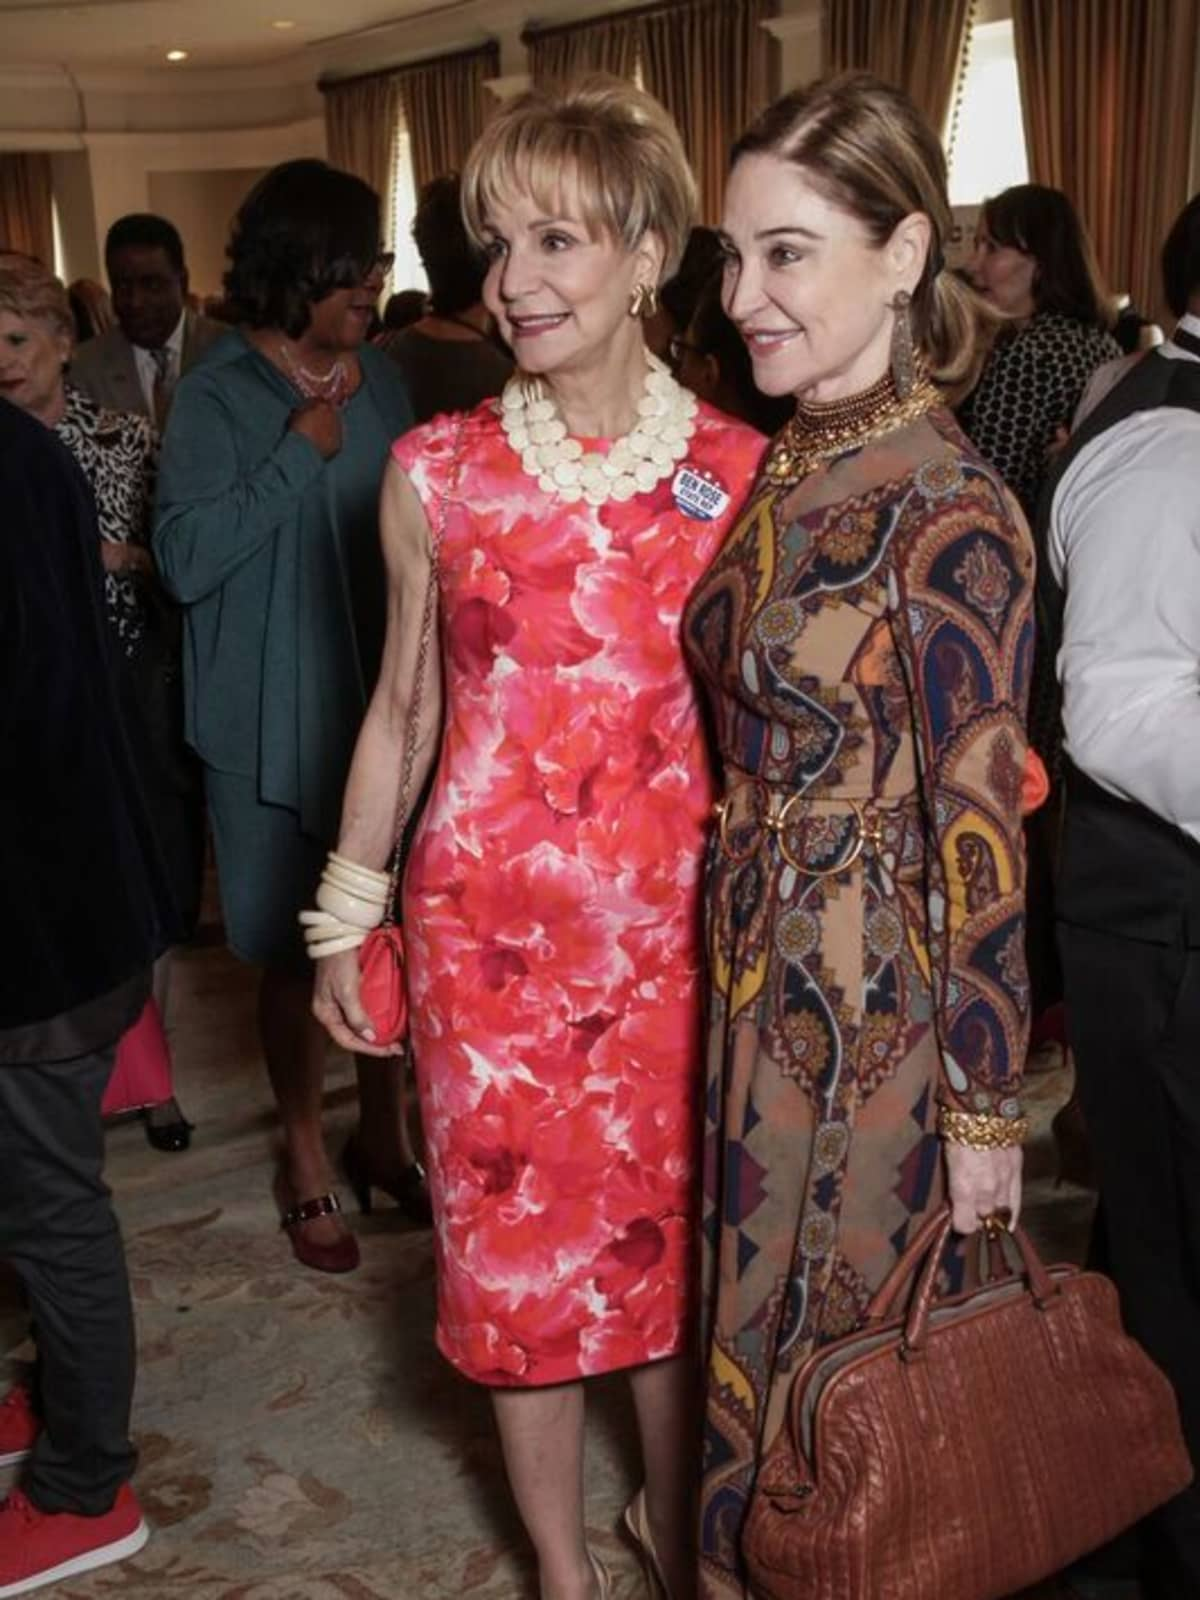 Leisa Holland-Nelson, Becca Cason Thrash at Passion for Fashion luncheon